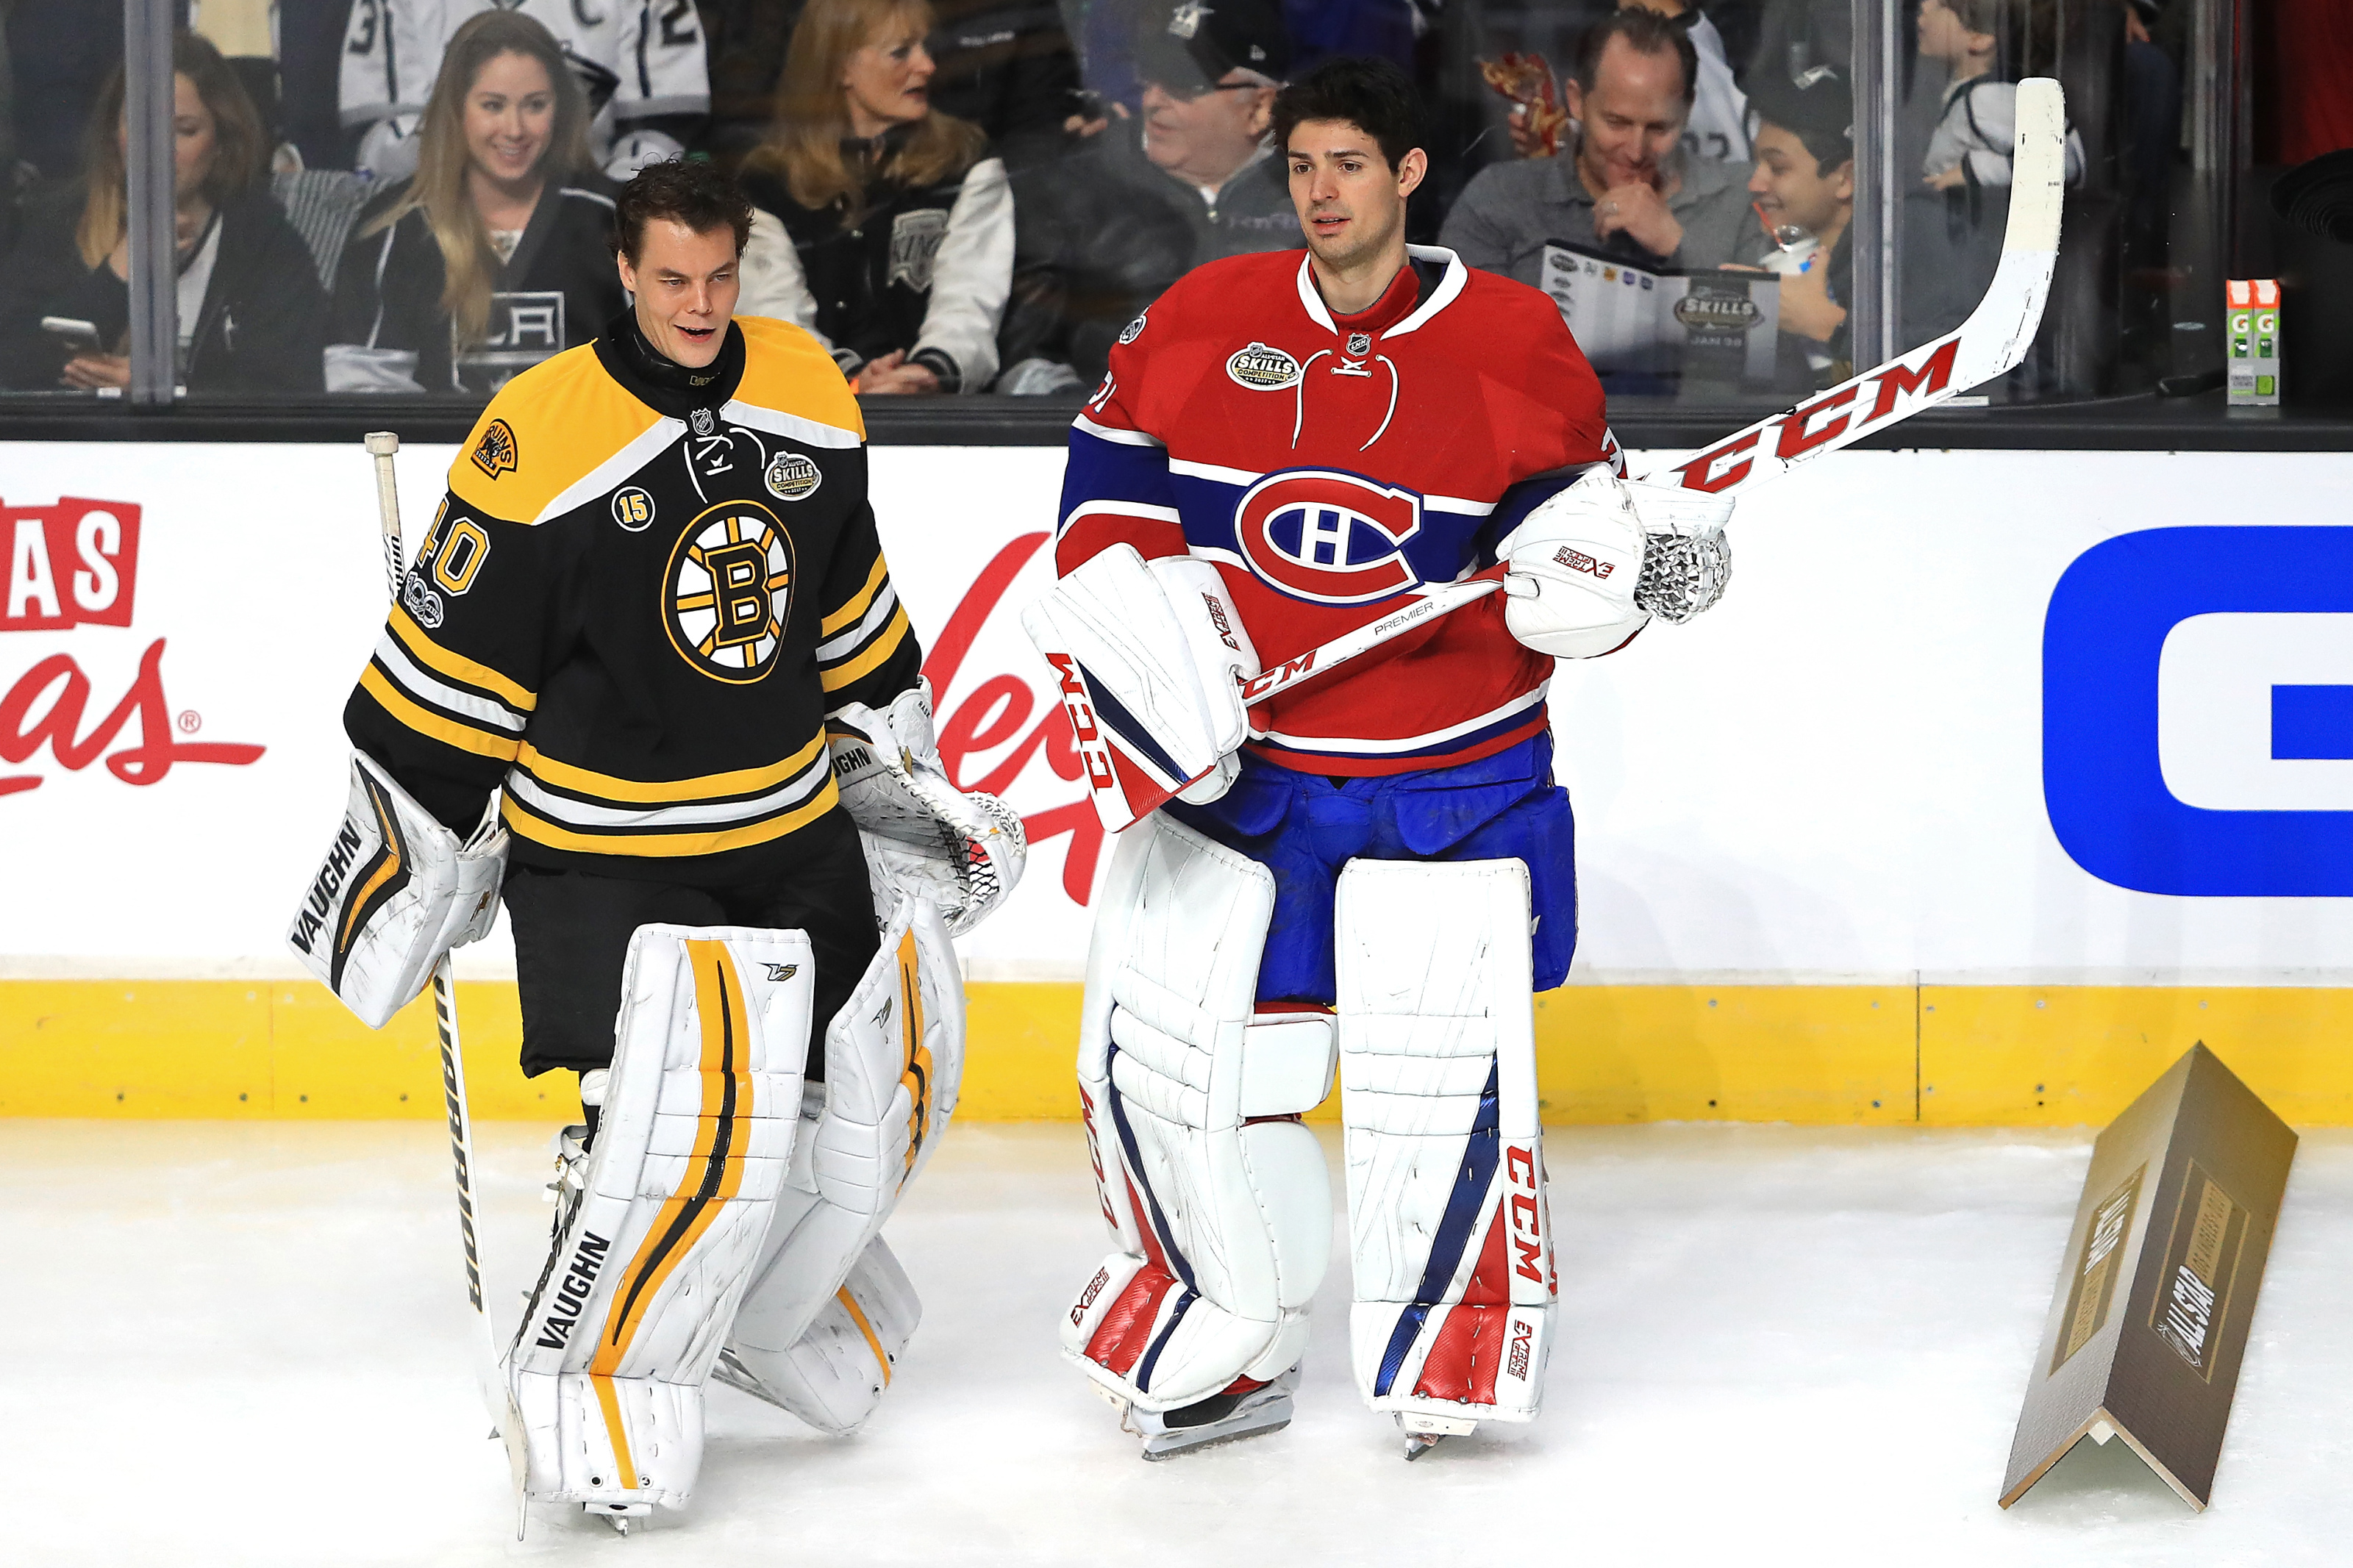 Montreal Canadiens Carey Price Or Tuukka Rask Who Do You Start